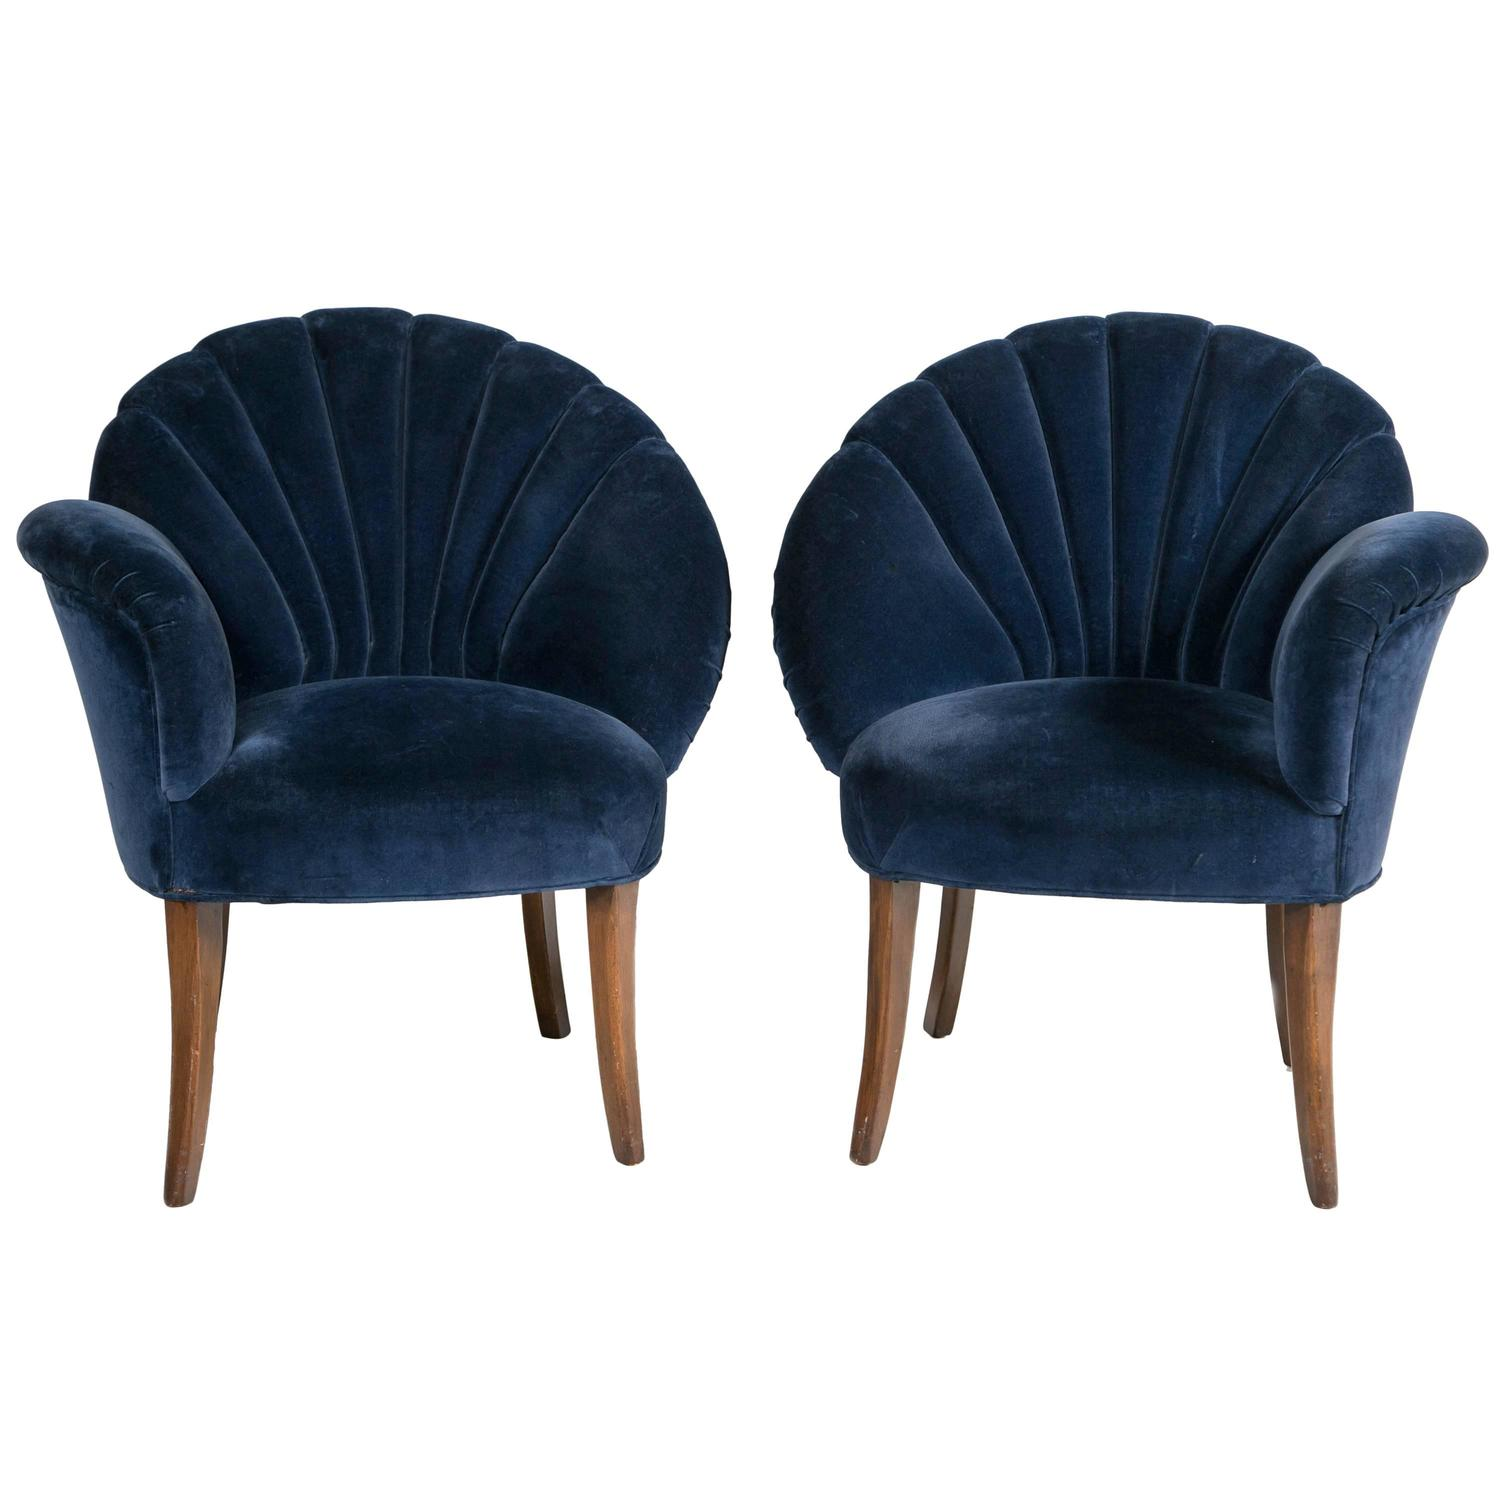 Pair Of Art Deco Velvet Chairs At 1stdibs